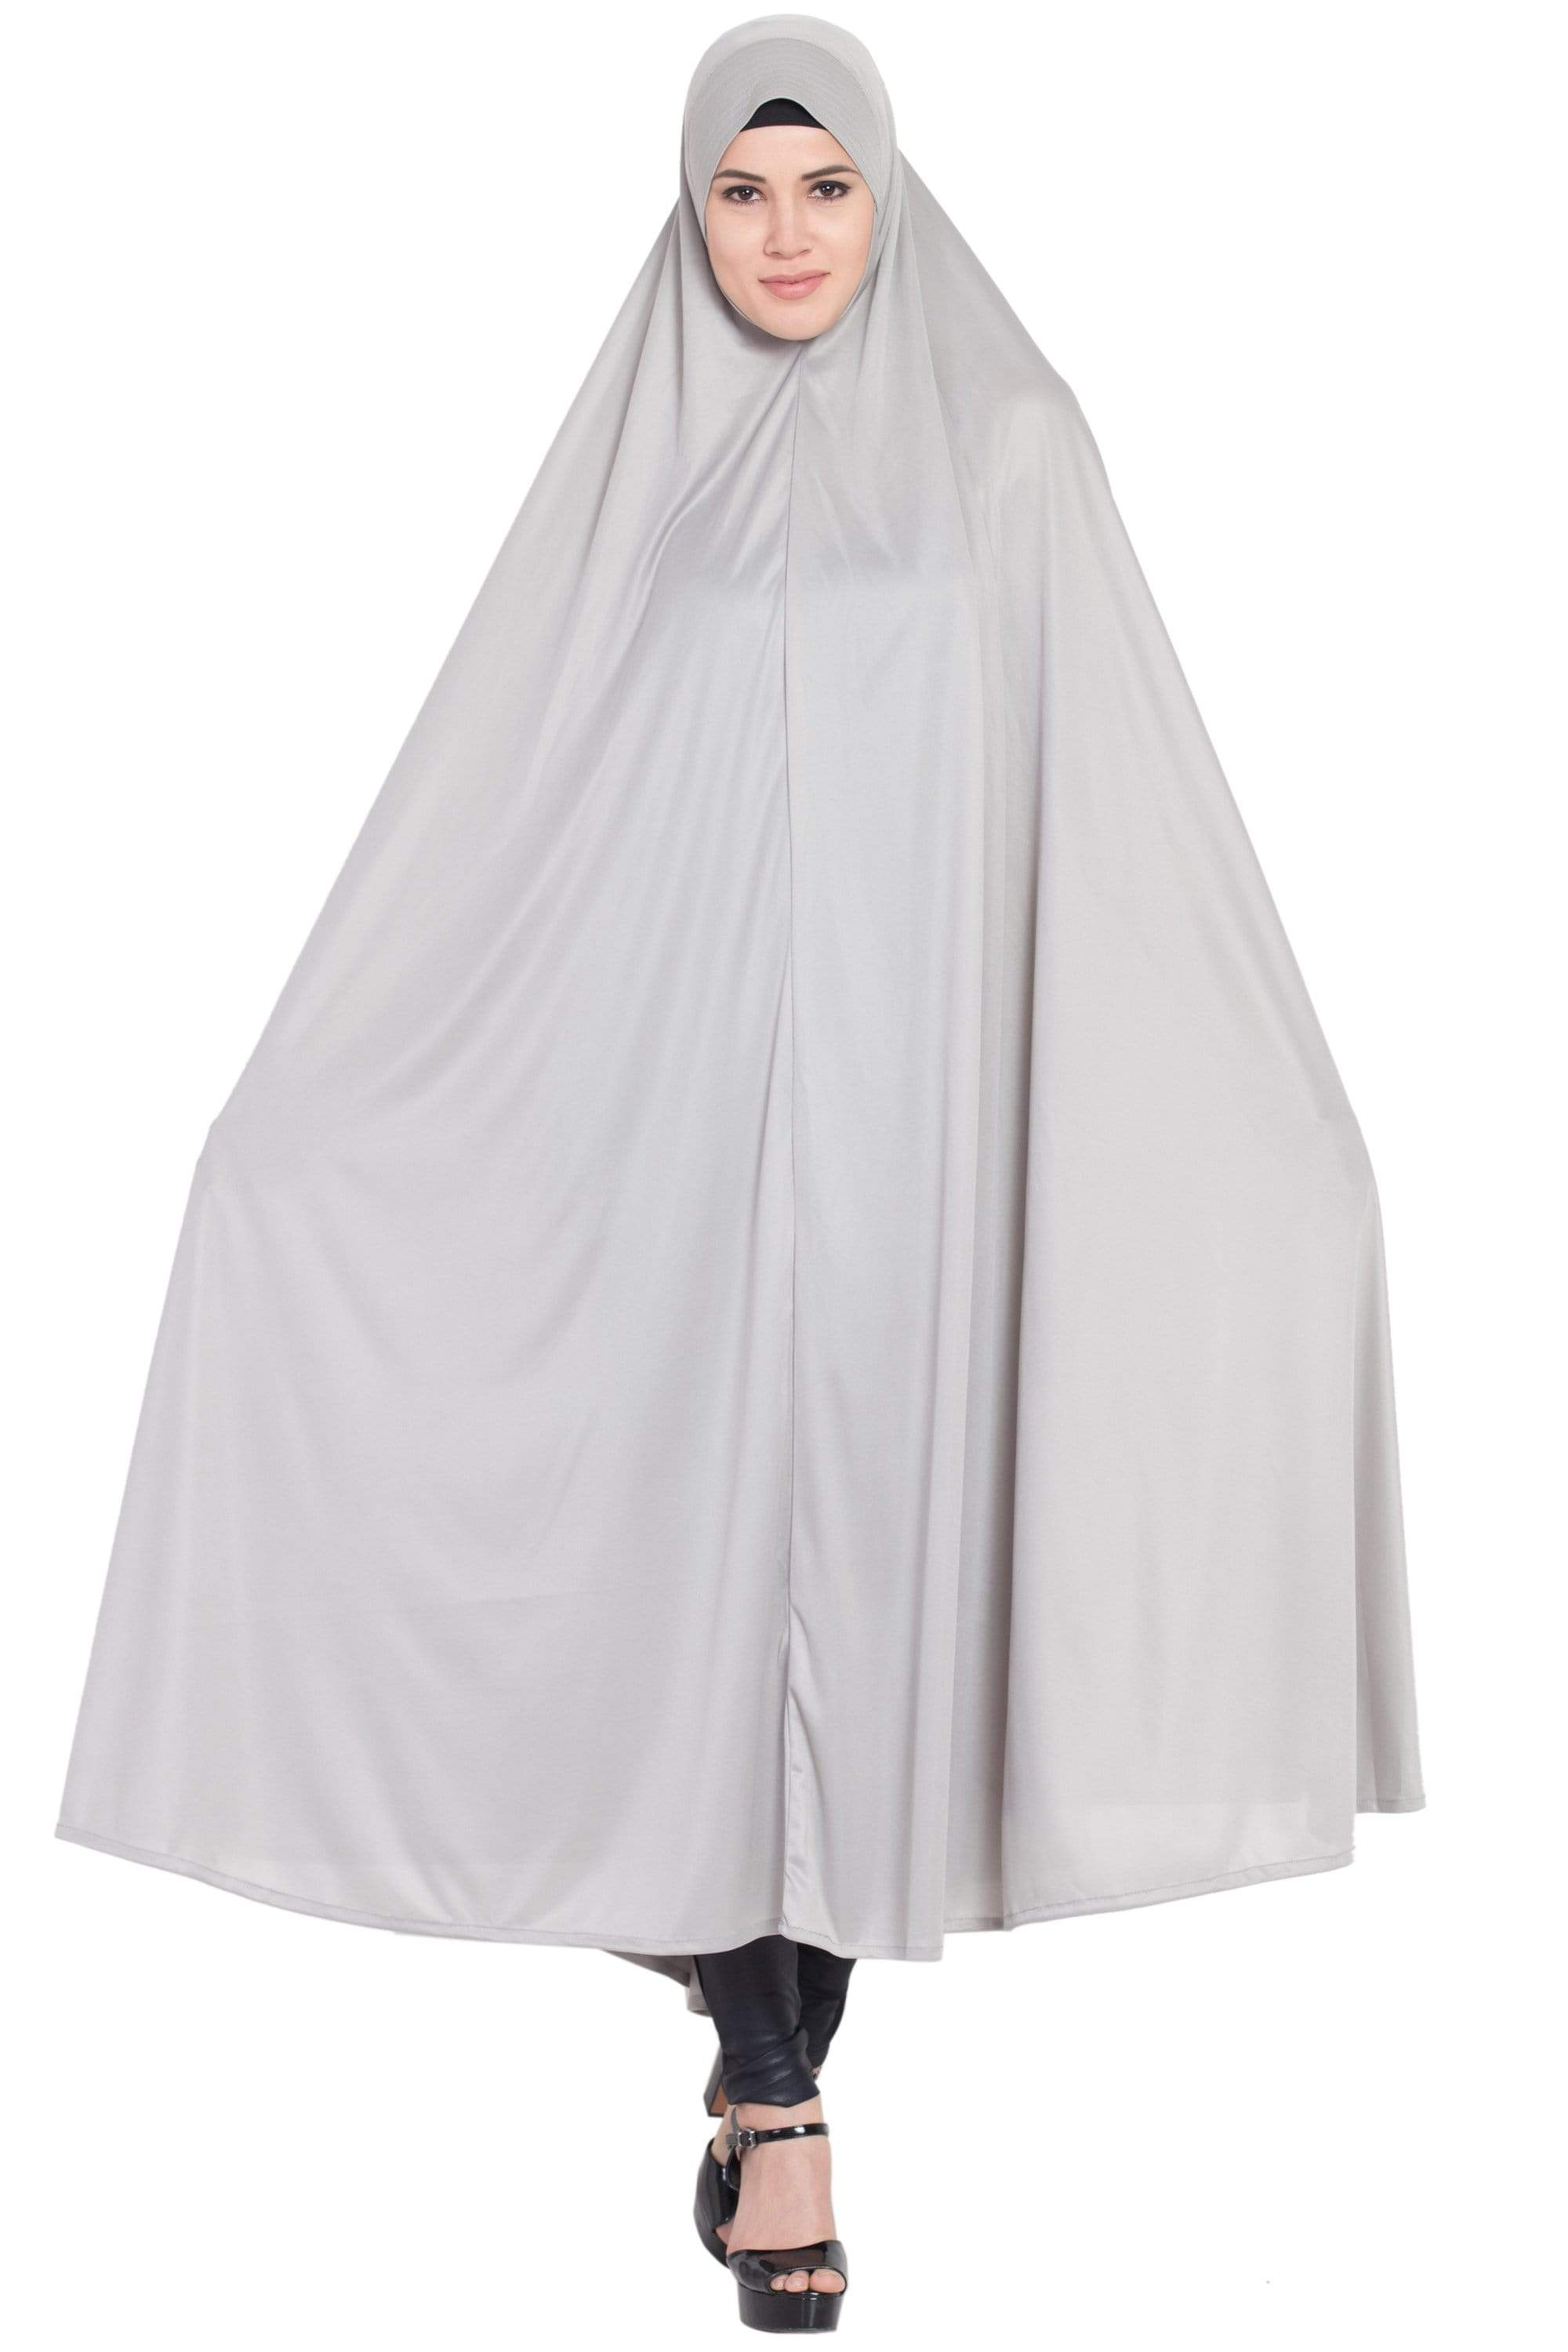 Nazneen head to calf Grey Jilbab Abaya